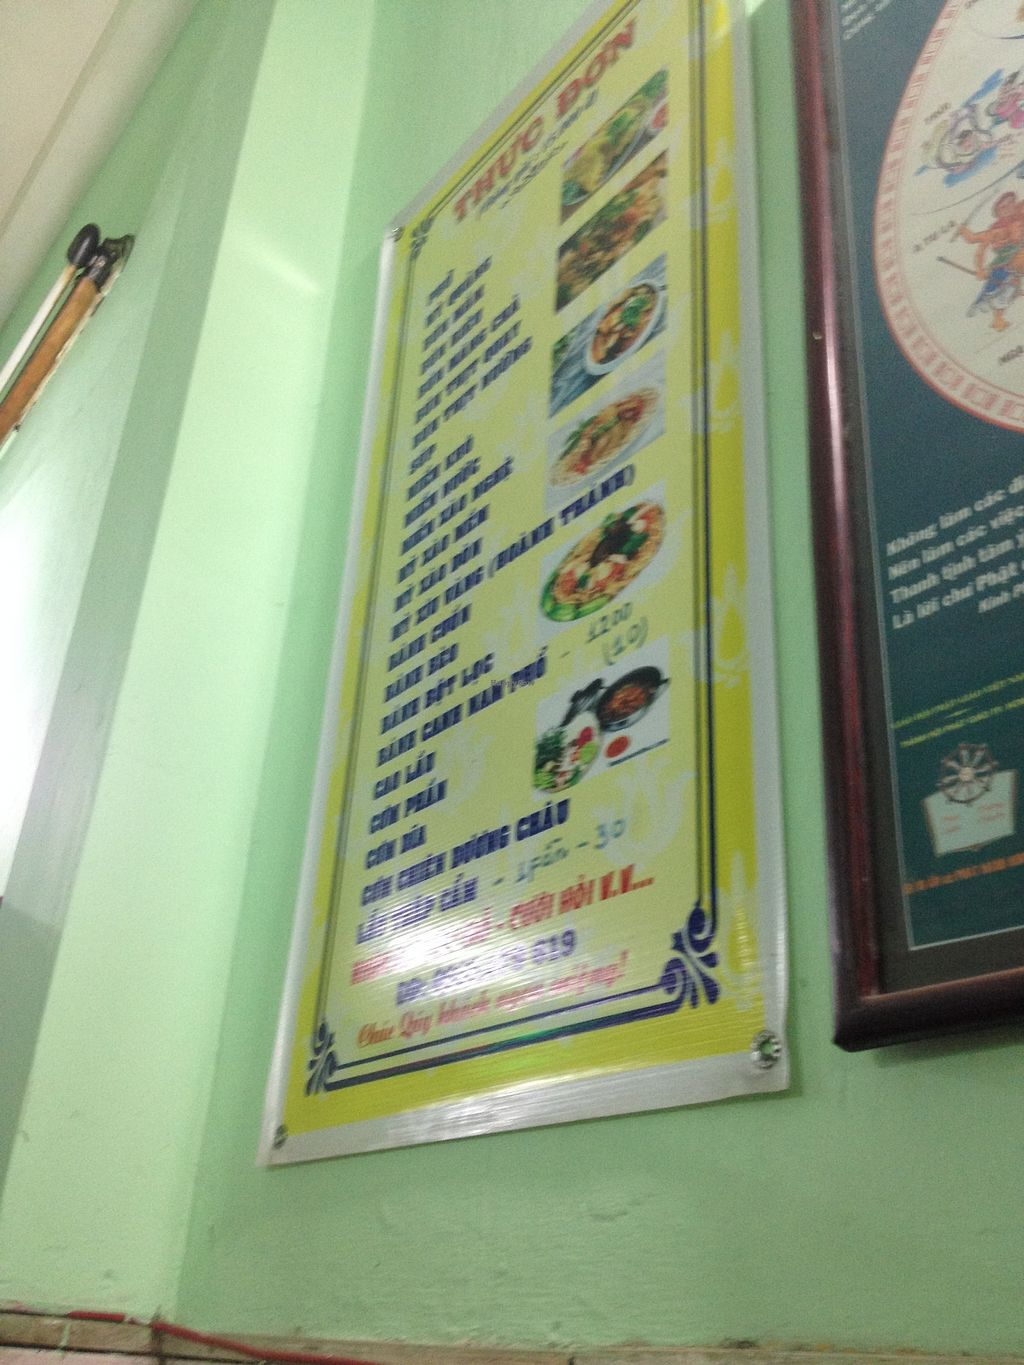 """Photo of Loc Thien Phuoc  by <a href=""""/members/profile/gamedev"""">gamedev</a> <br/>Menu (unfortunately it's a little fuzzy!) <br/> August 21, 2017  - <a href='/contact/abuse/image/98671/295135'>Report</a>"""